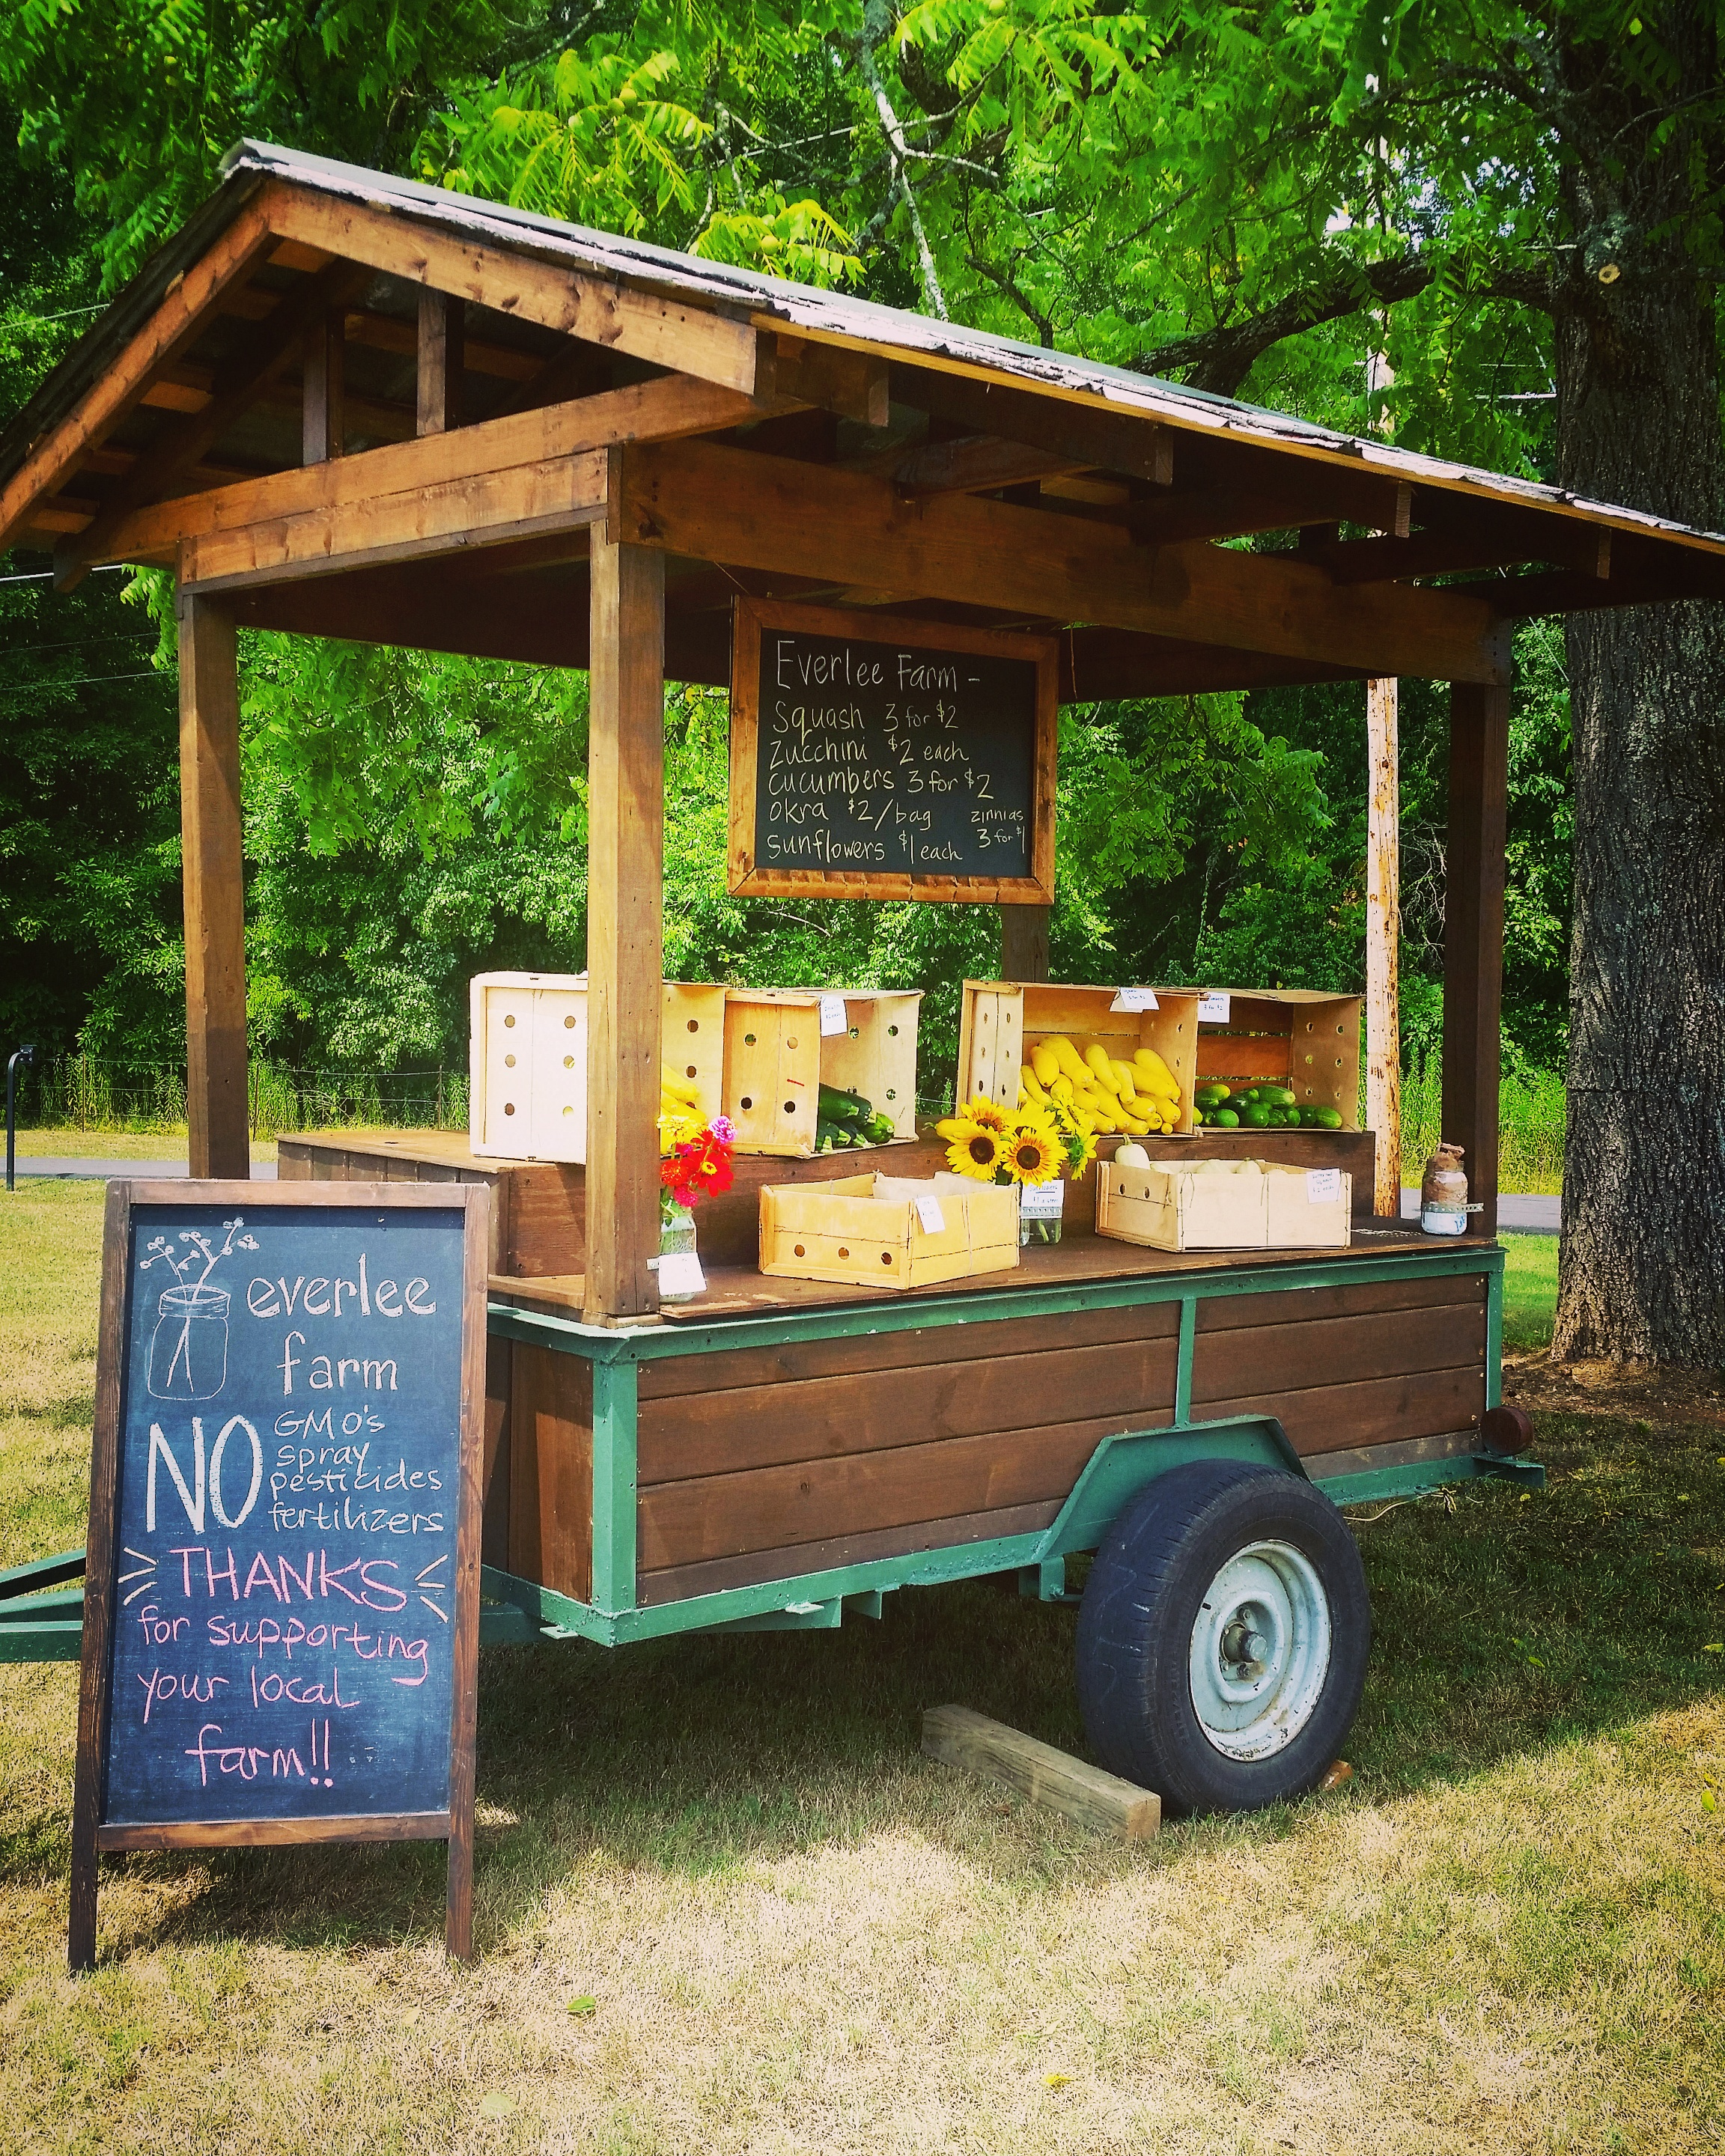 Farm Stand is OPEN! Mondays and Thursdays All Day!